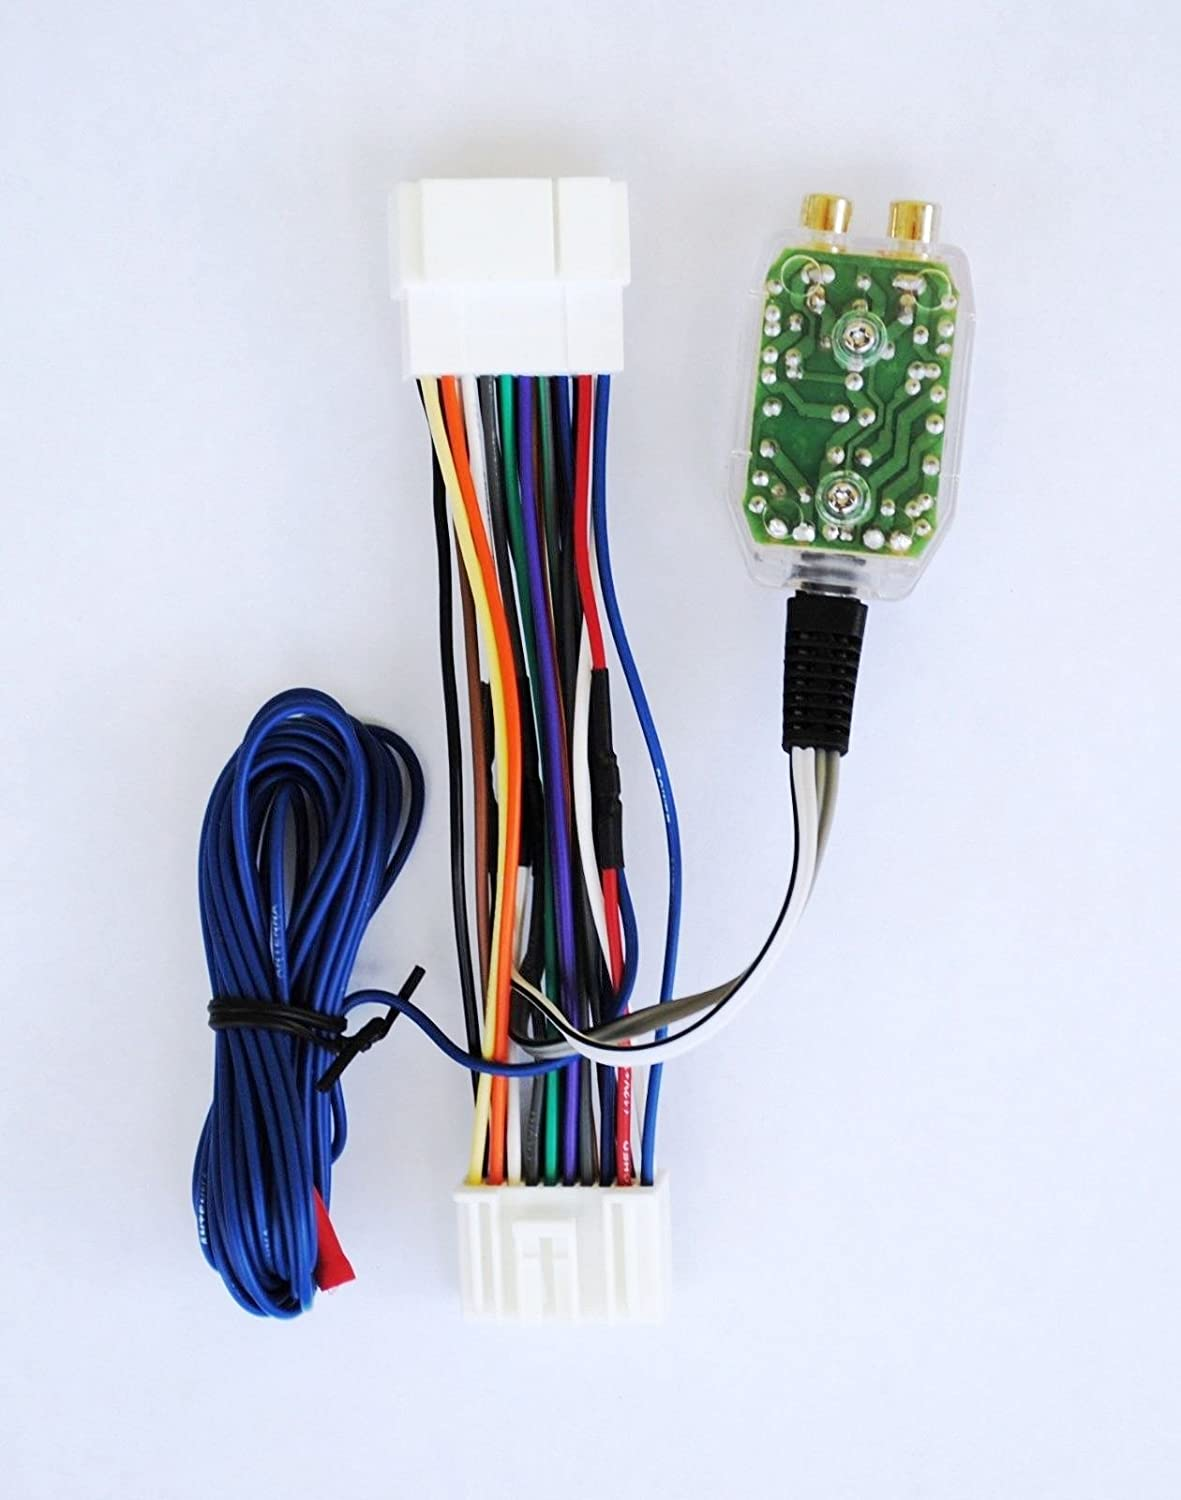 Factory Radio Amplifier Amp Sub Wire Harness Inline 2003 Acura Cl Wiring Speaker Converter Interface Kit Car Electronics